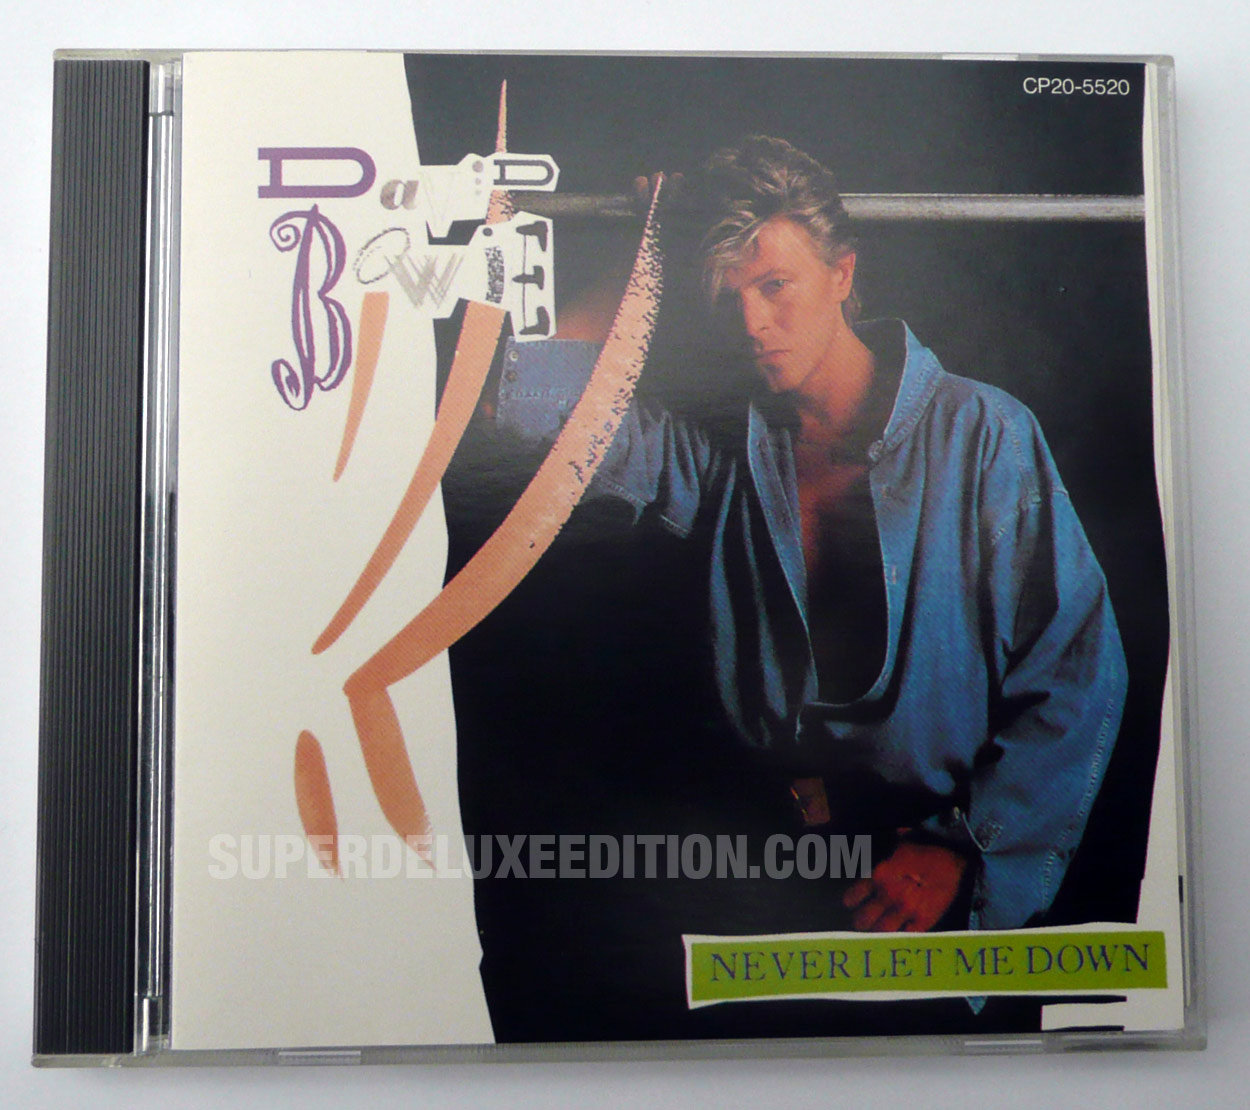 David Bowie / Never Let Me Down Japanese CD single